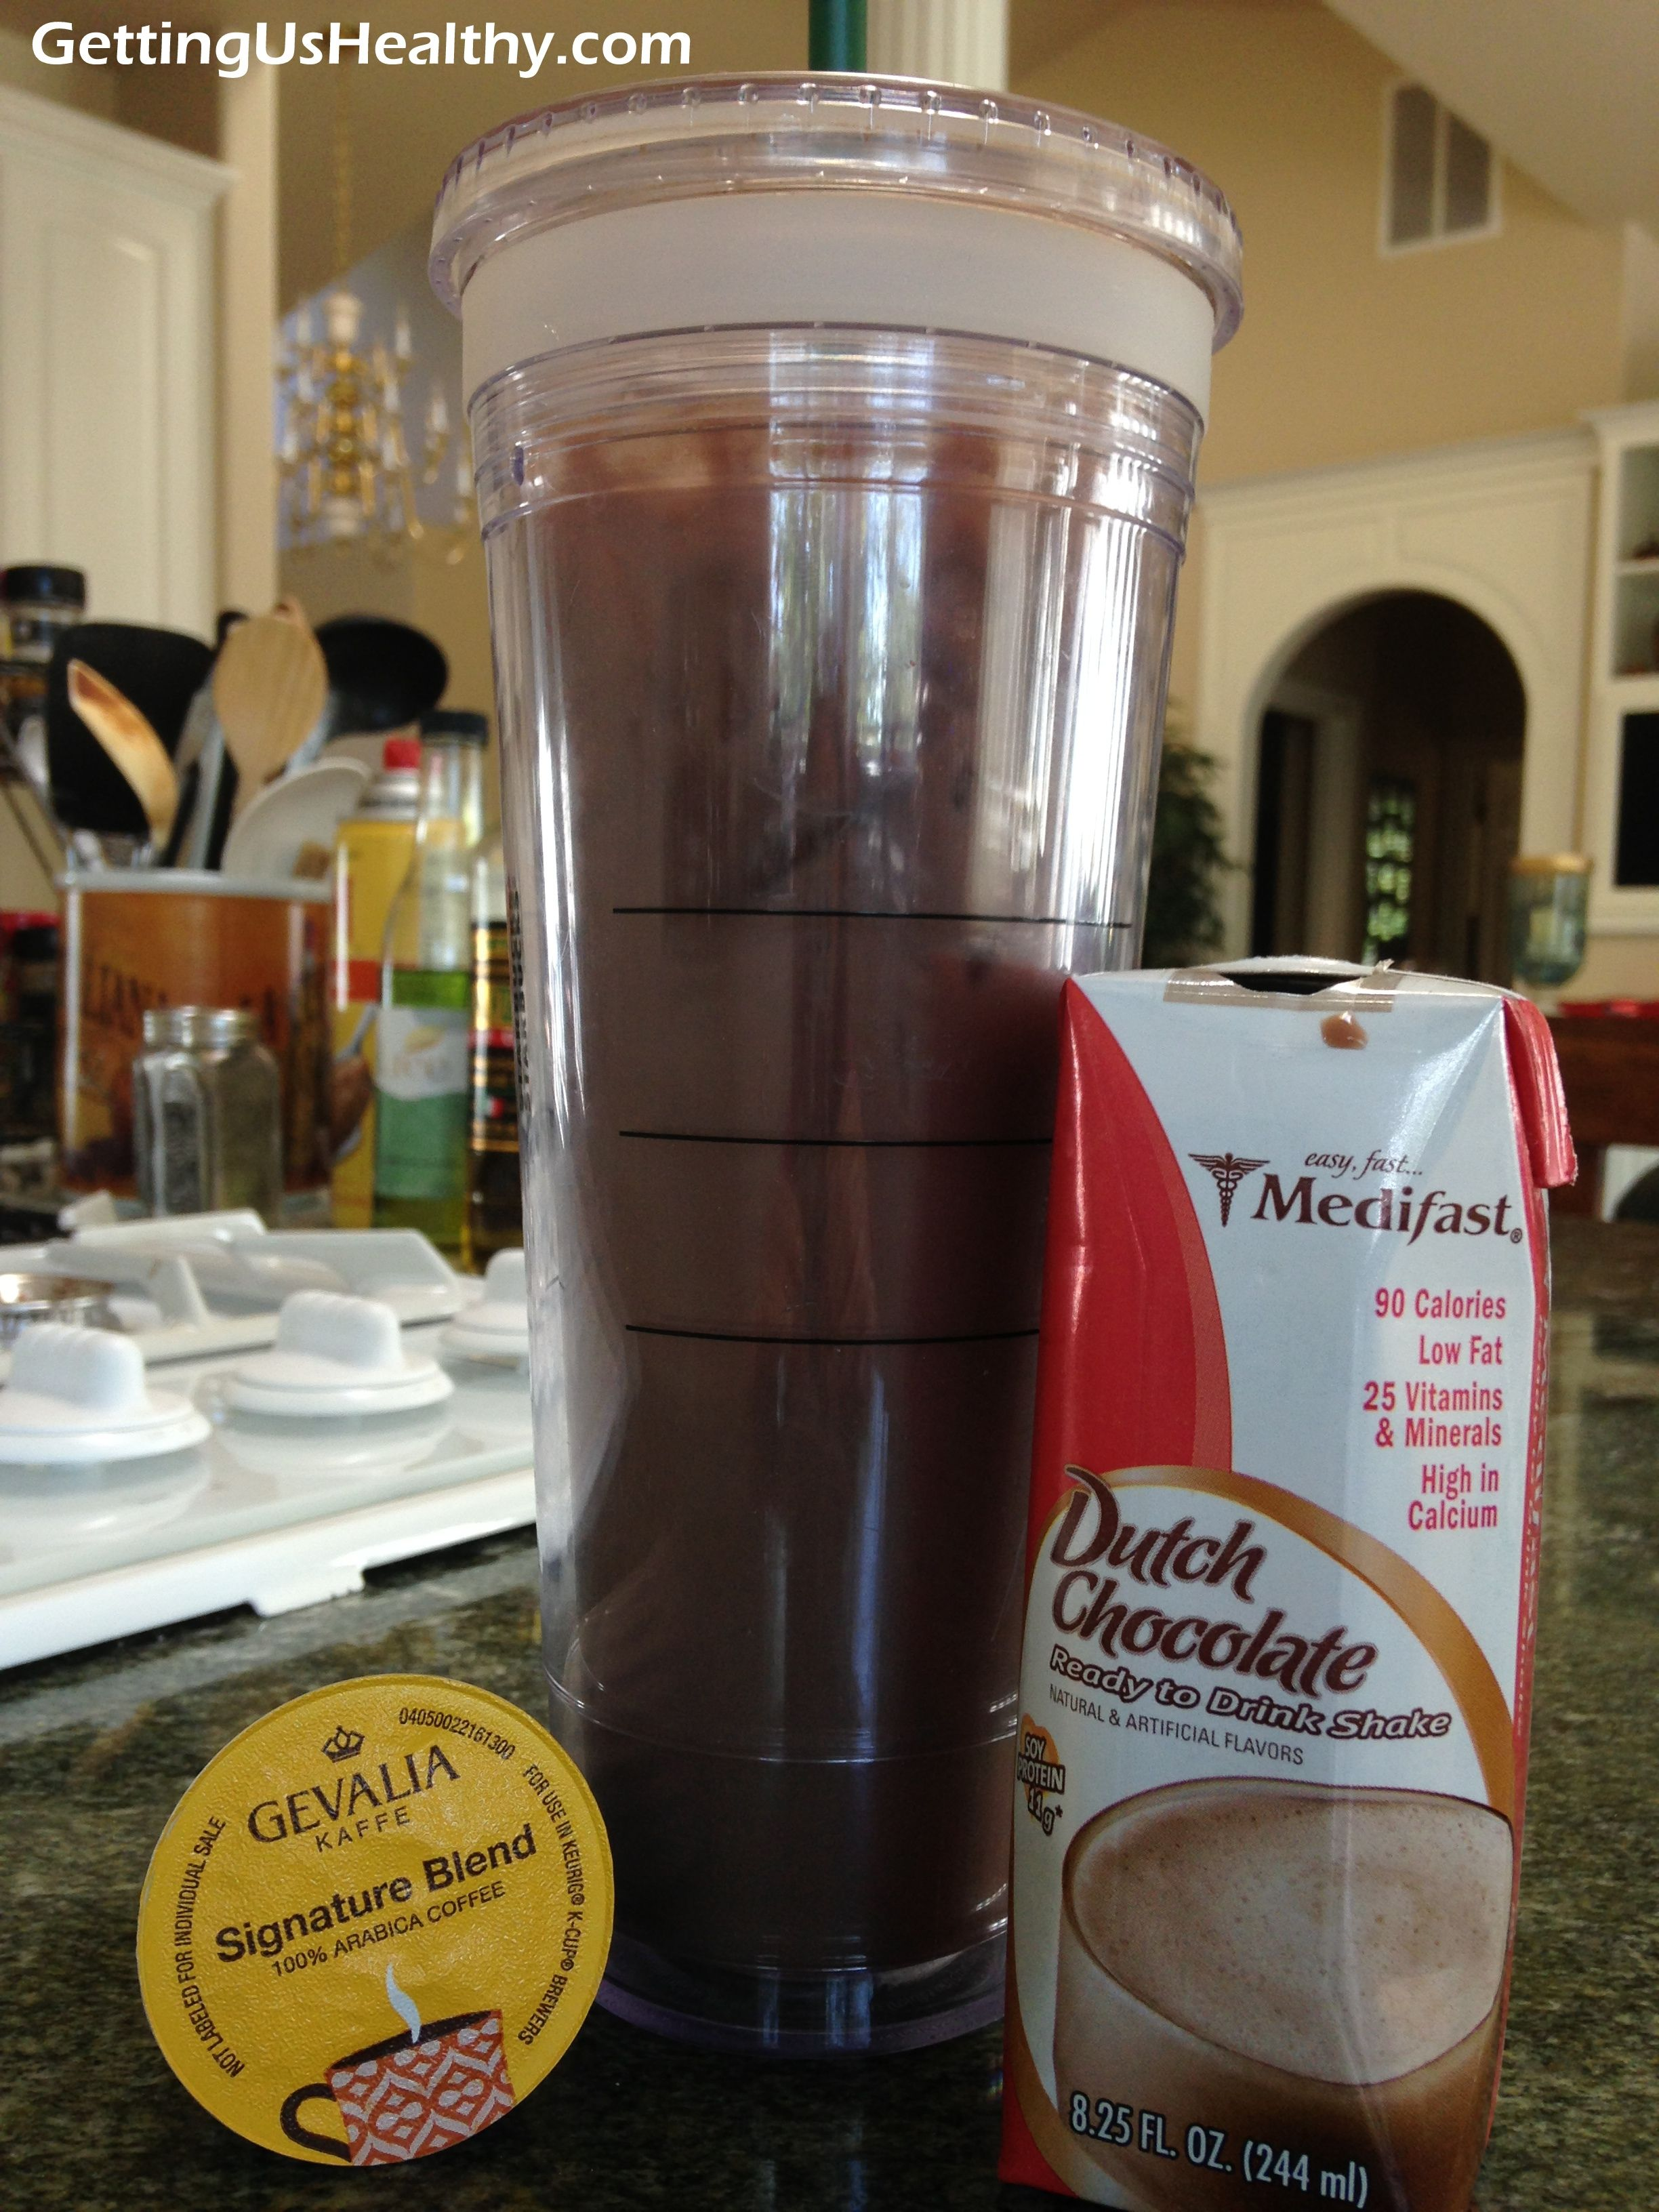 An amazing and healthy Iced coffee/mocha drink only 90